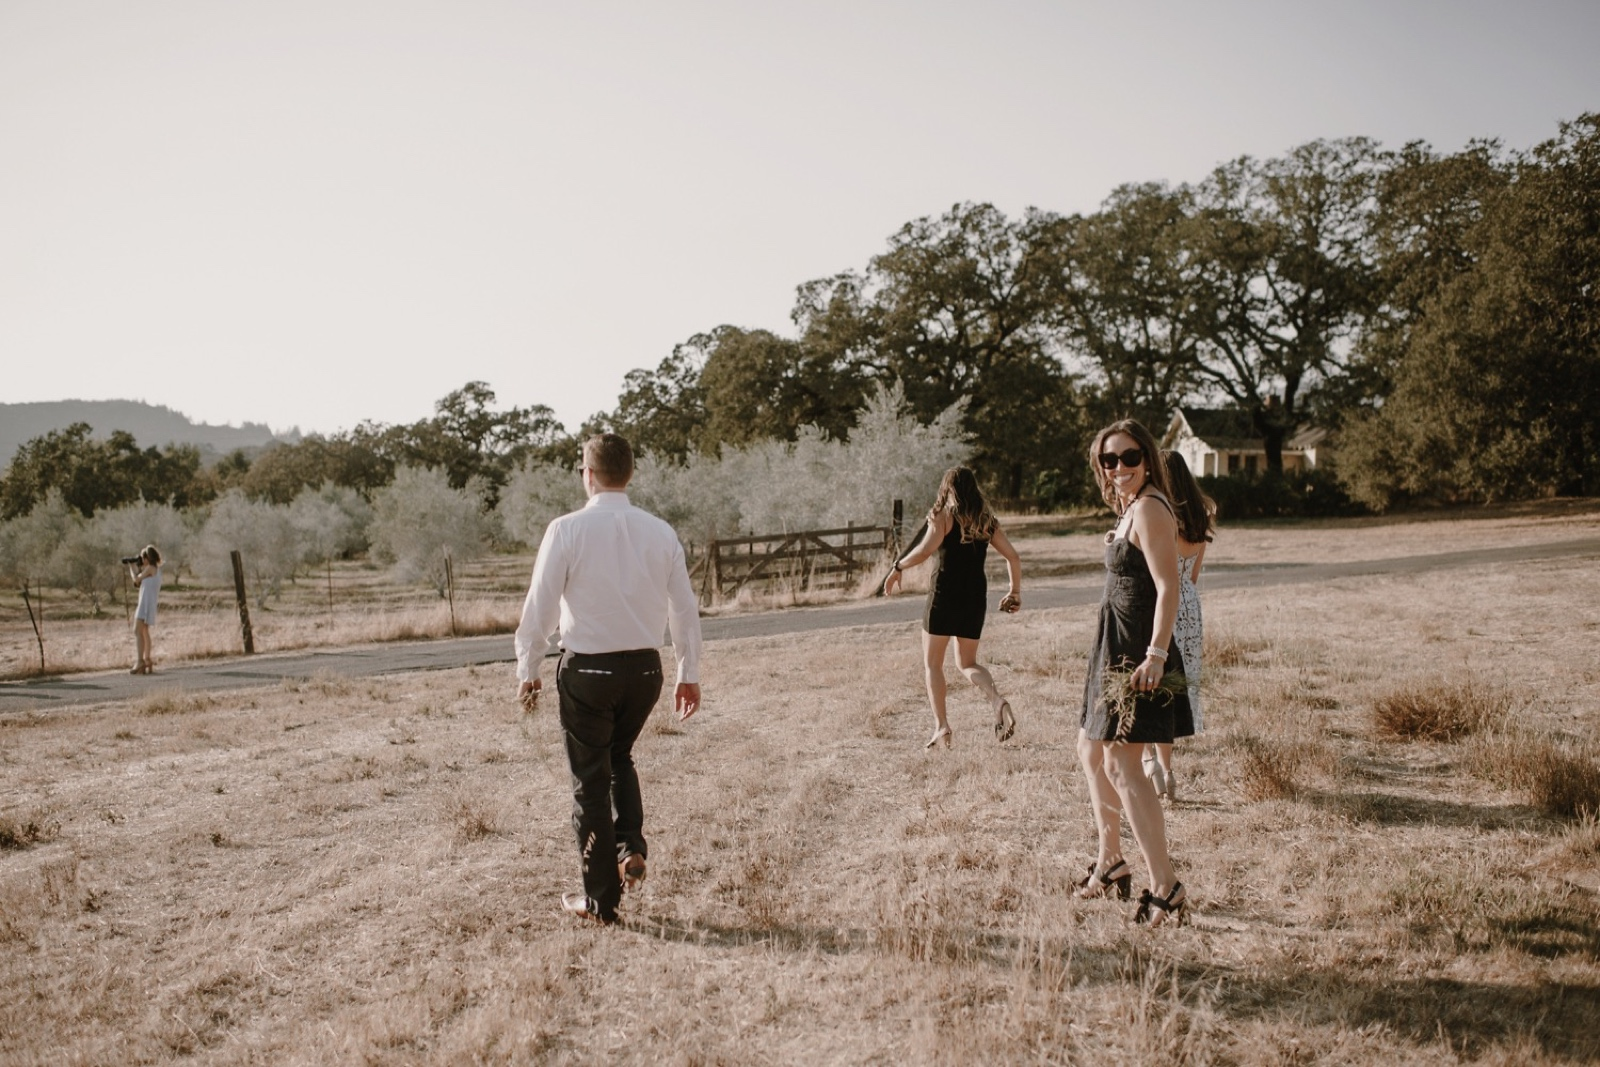 Beltane_Ranch_Wedding_LGBTQ-237.jpg